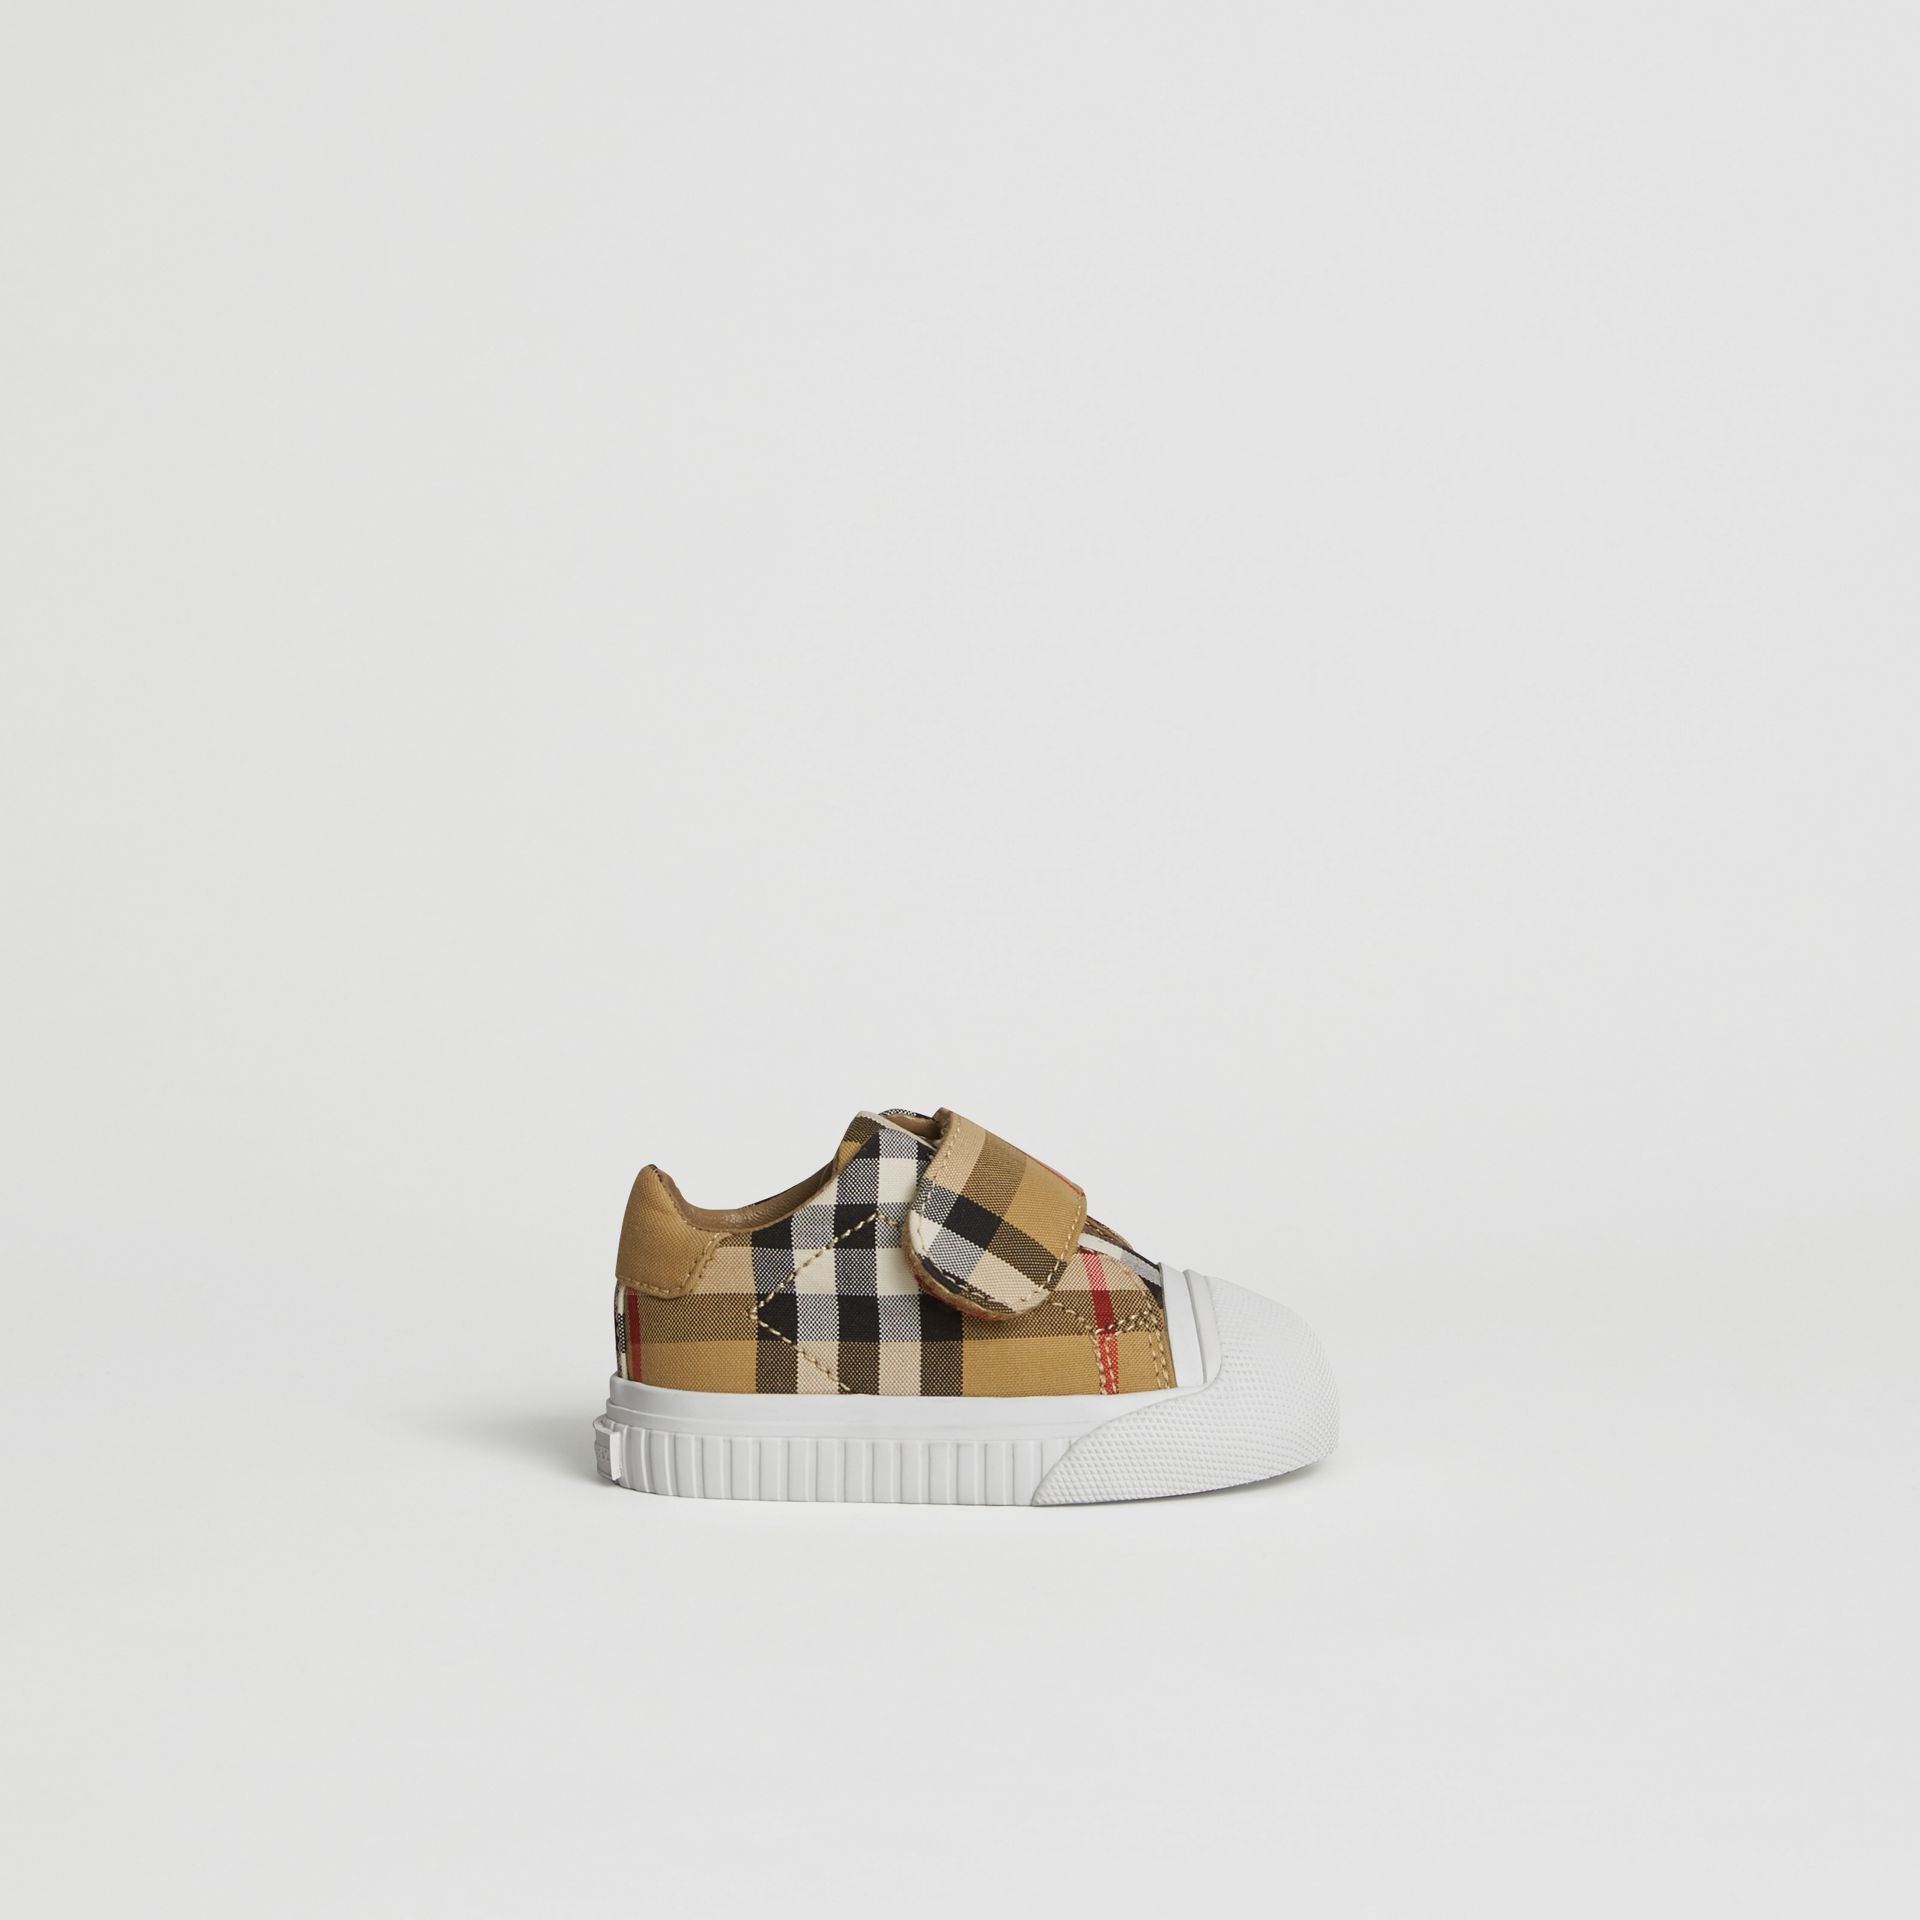 Sneakers en cuir à motif Vintage check (Jaune Antique/blanc Optique) - Enfant | Burberry Canada - photo de la galerie 3